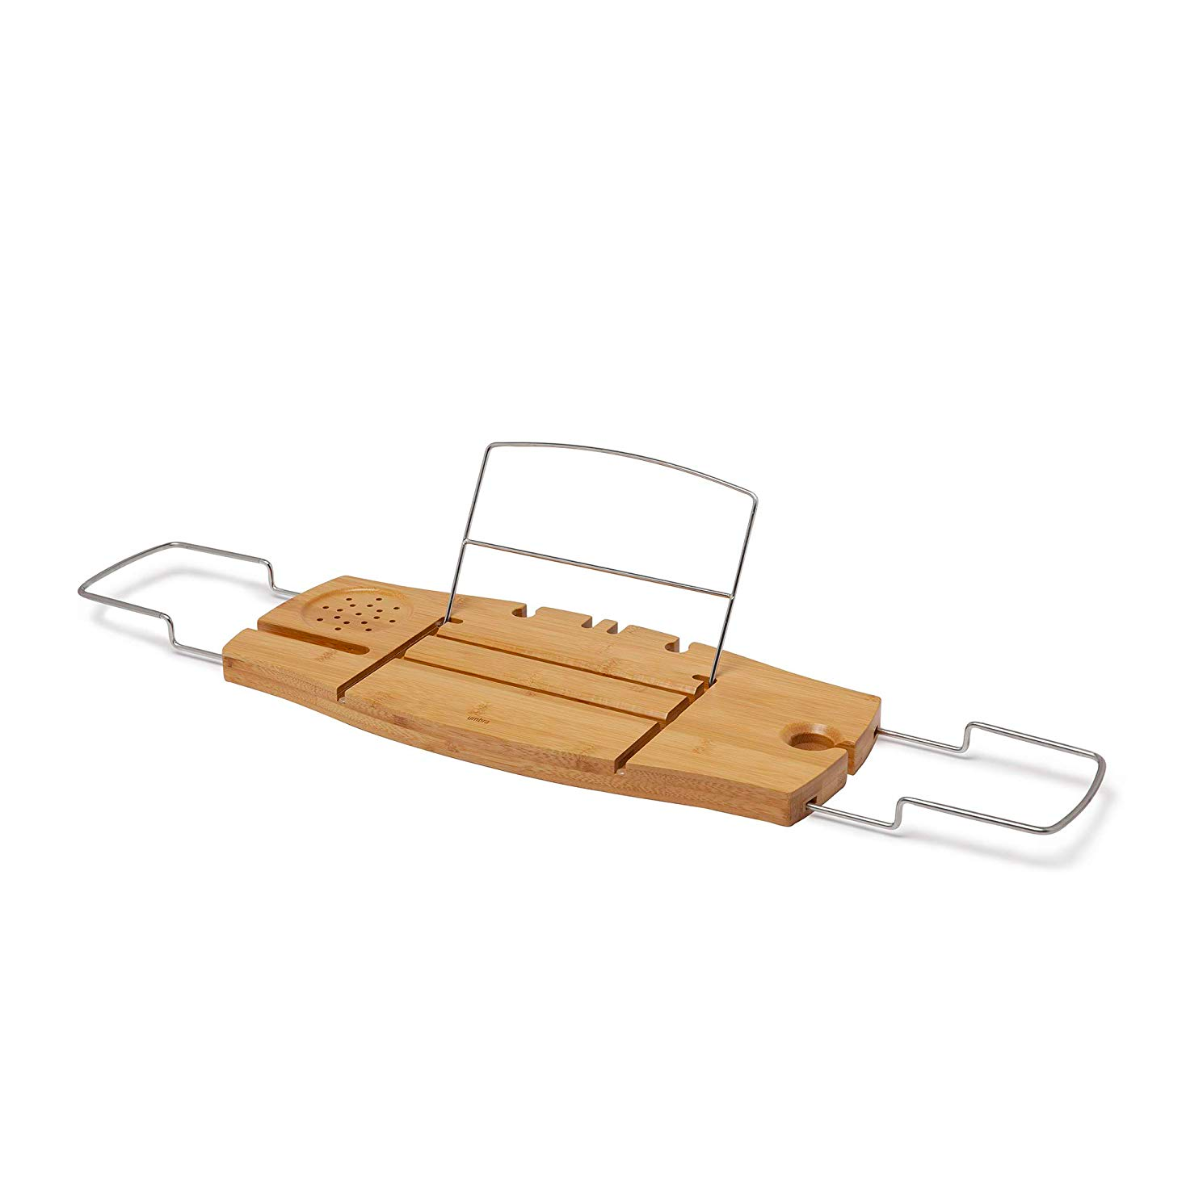 Umbra Aquala bathtub caddy, natural